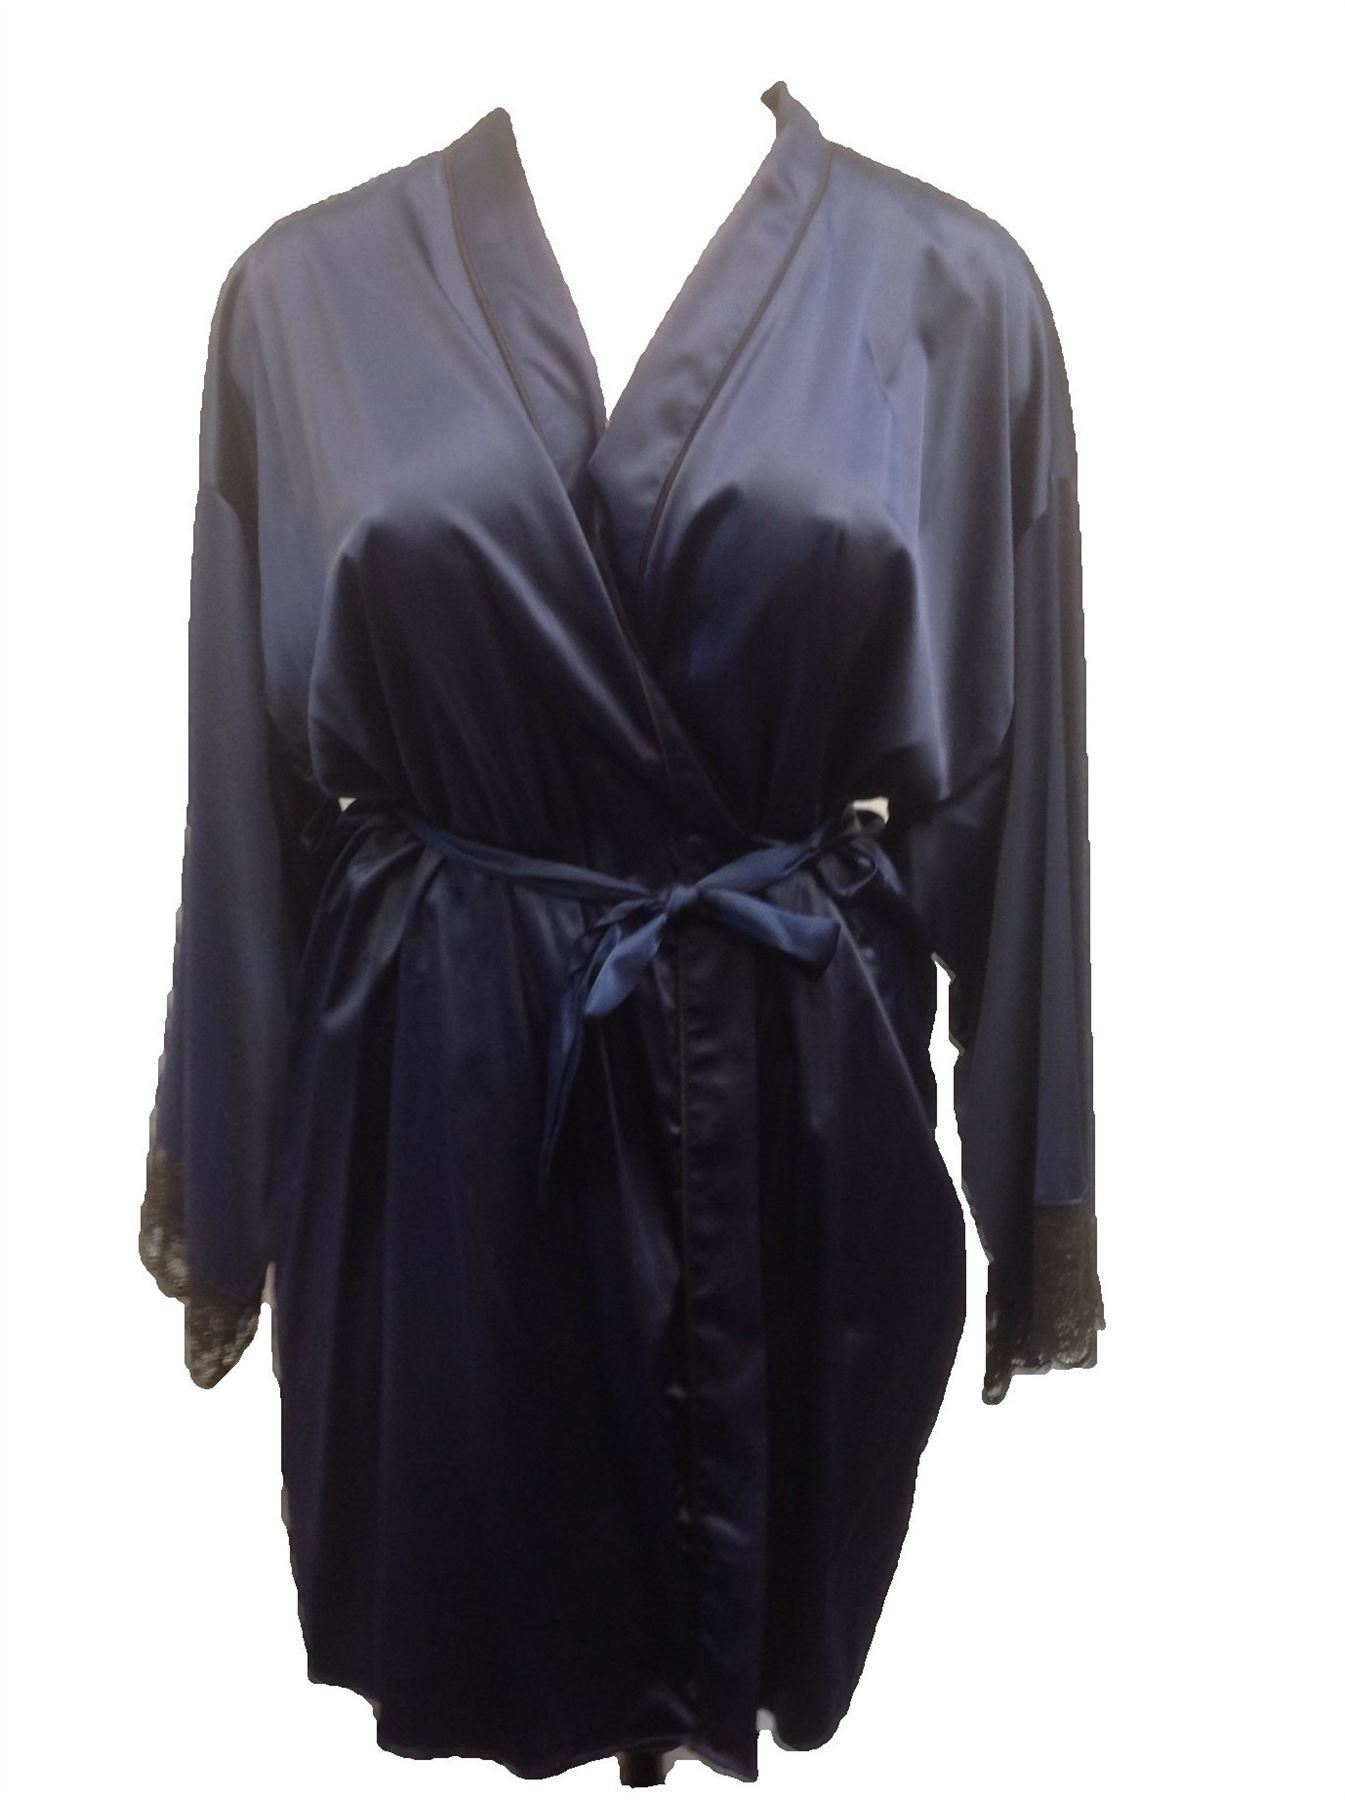 damen seide satin kimono morgenrock wickel morgenmantel bademantel ebay. Black Bedroom Furniture Sets. Home Design Ideas